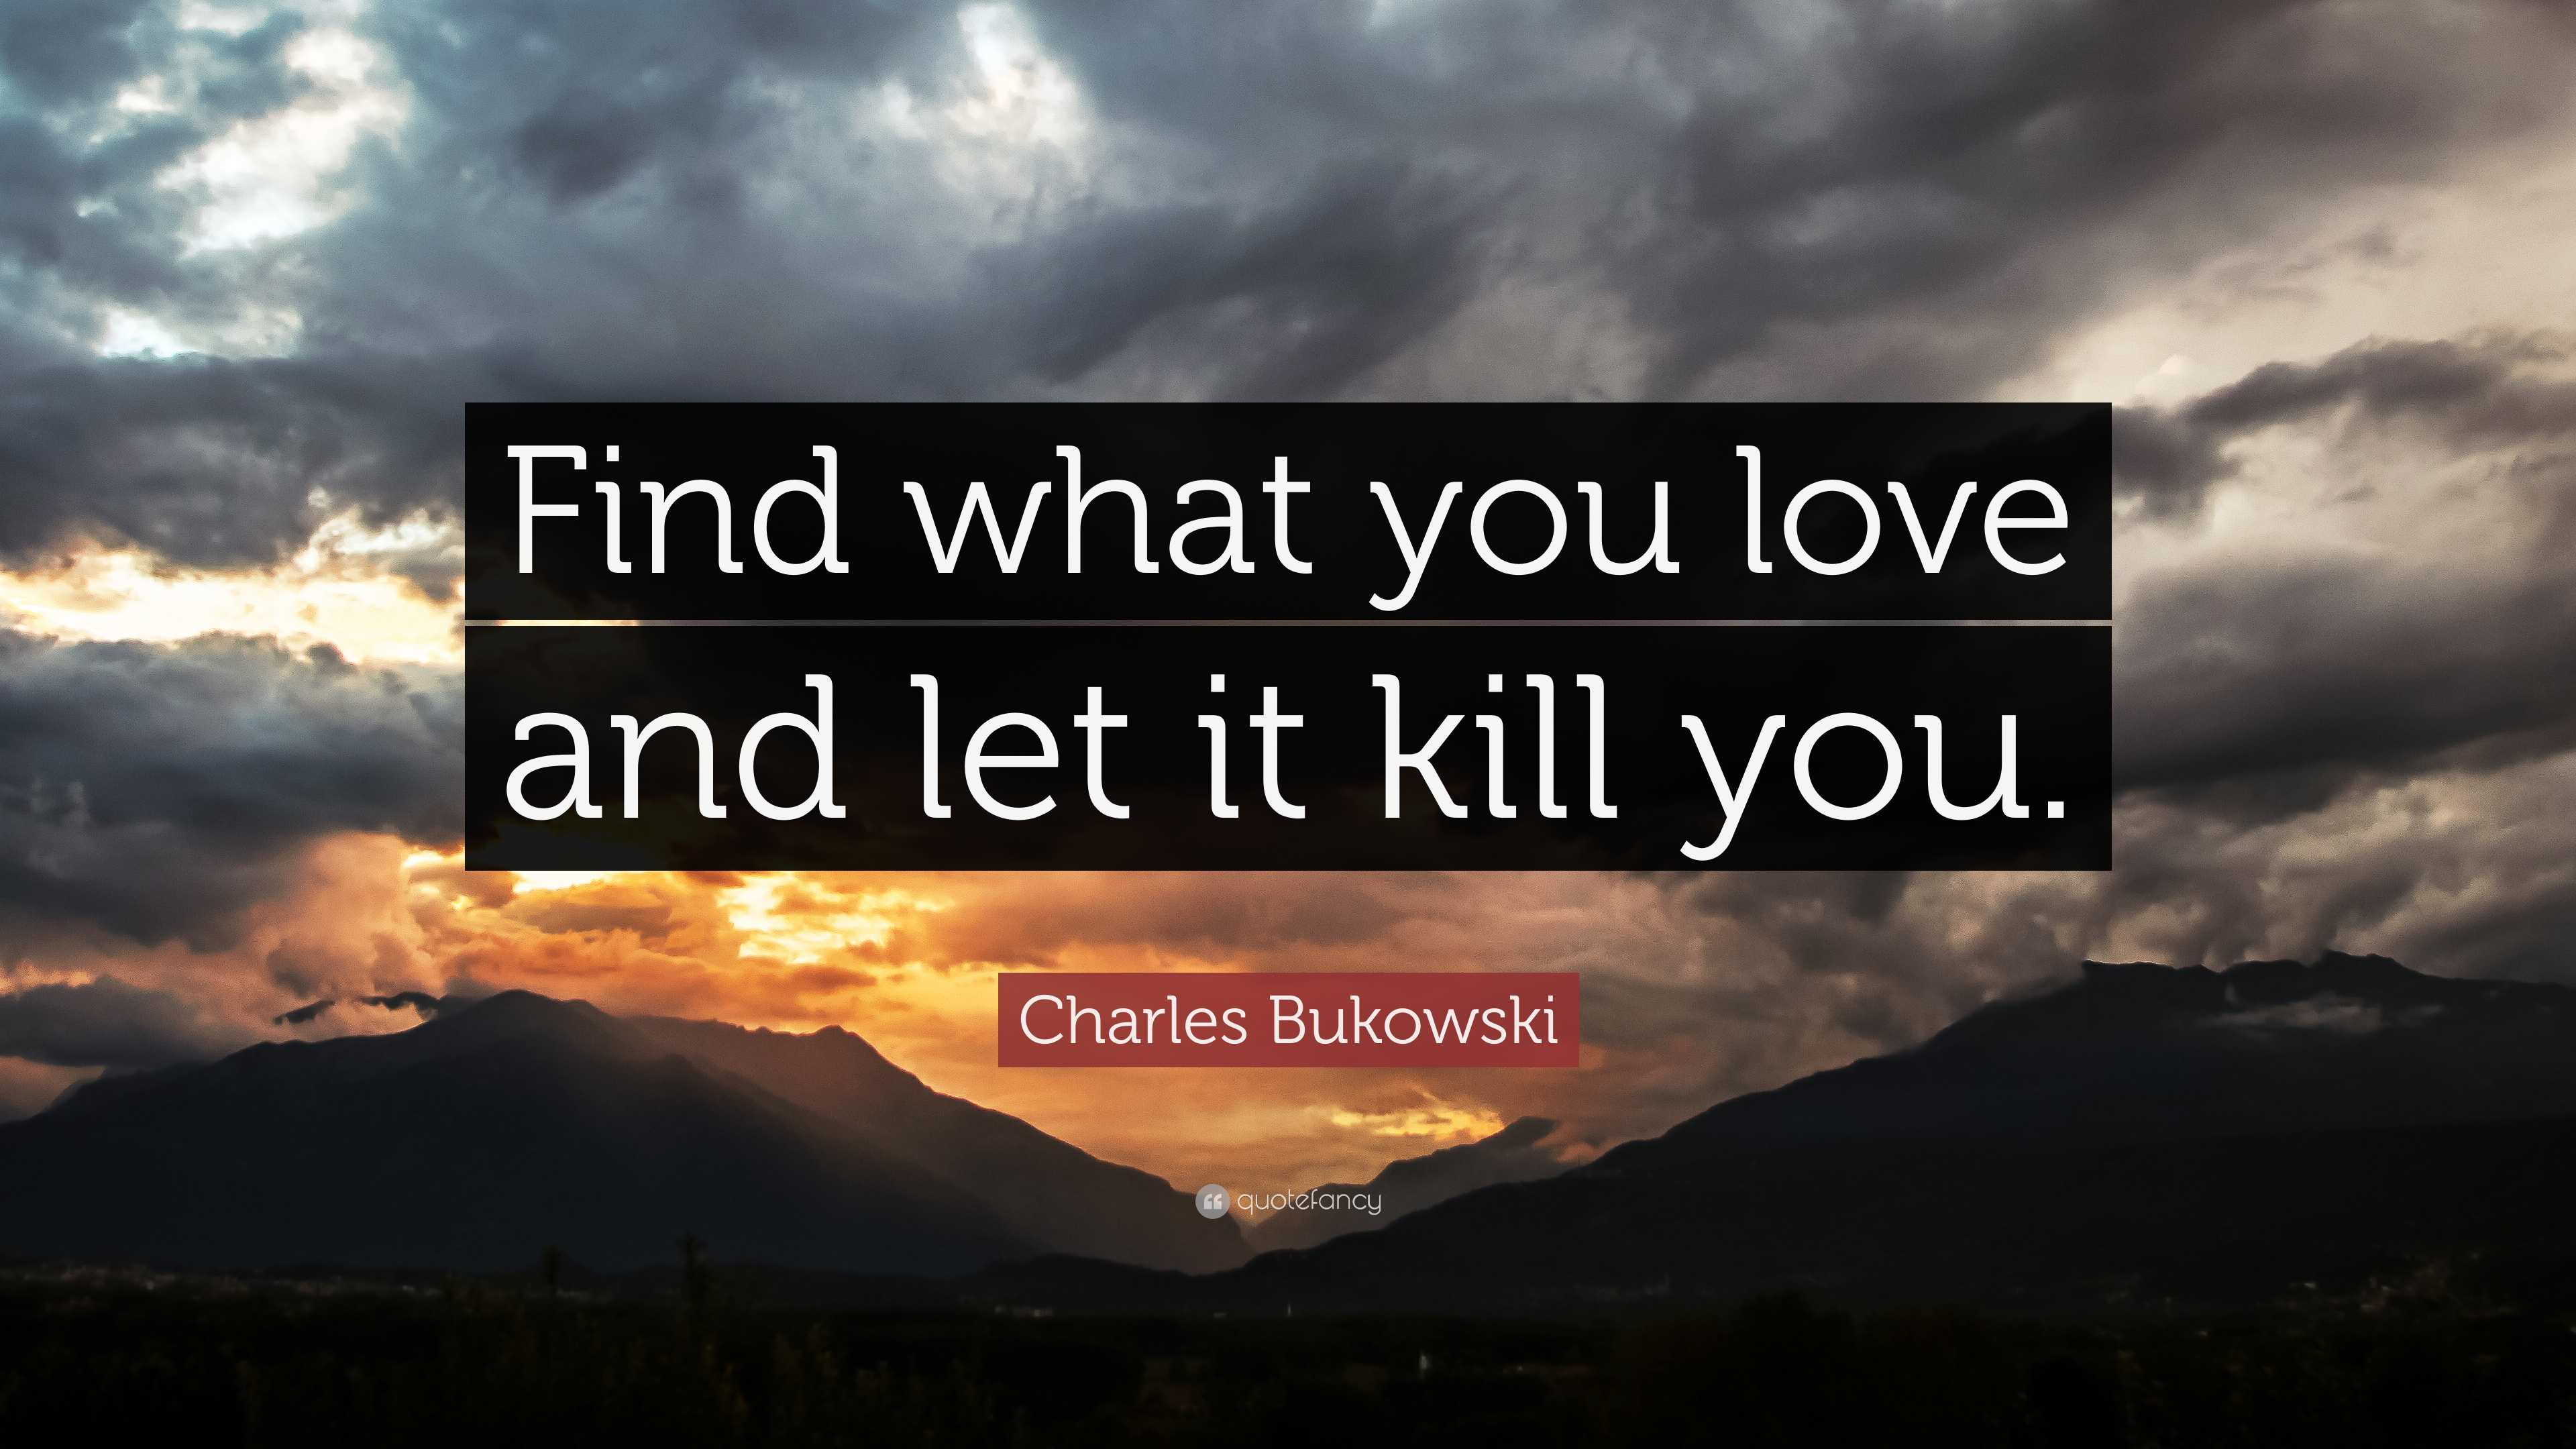 find what you love and let it kill you When did charles bukowski say, find what you love and let it kill you.